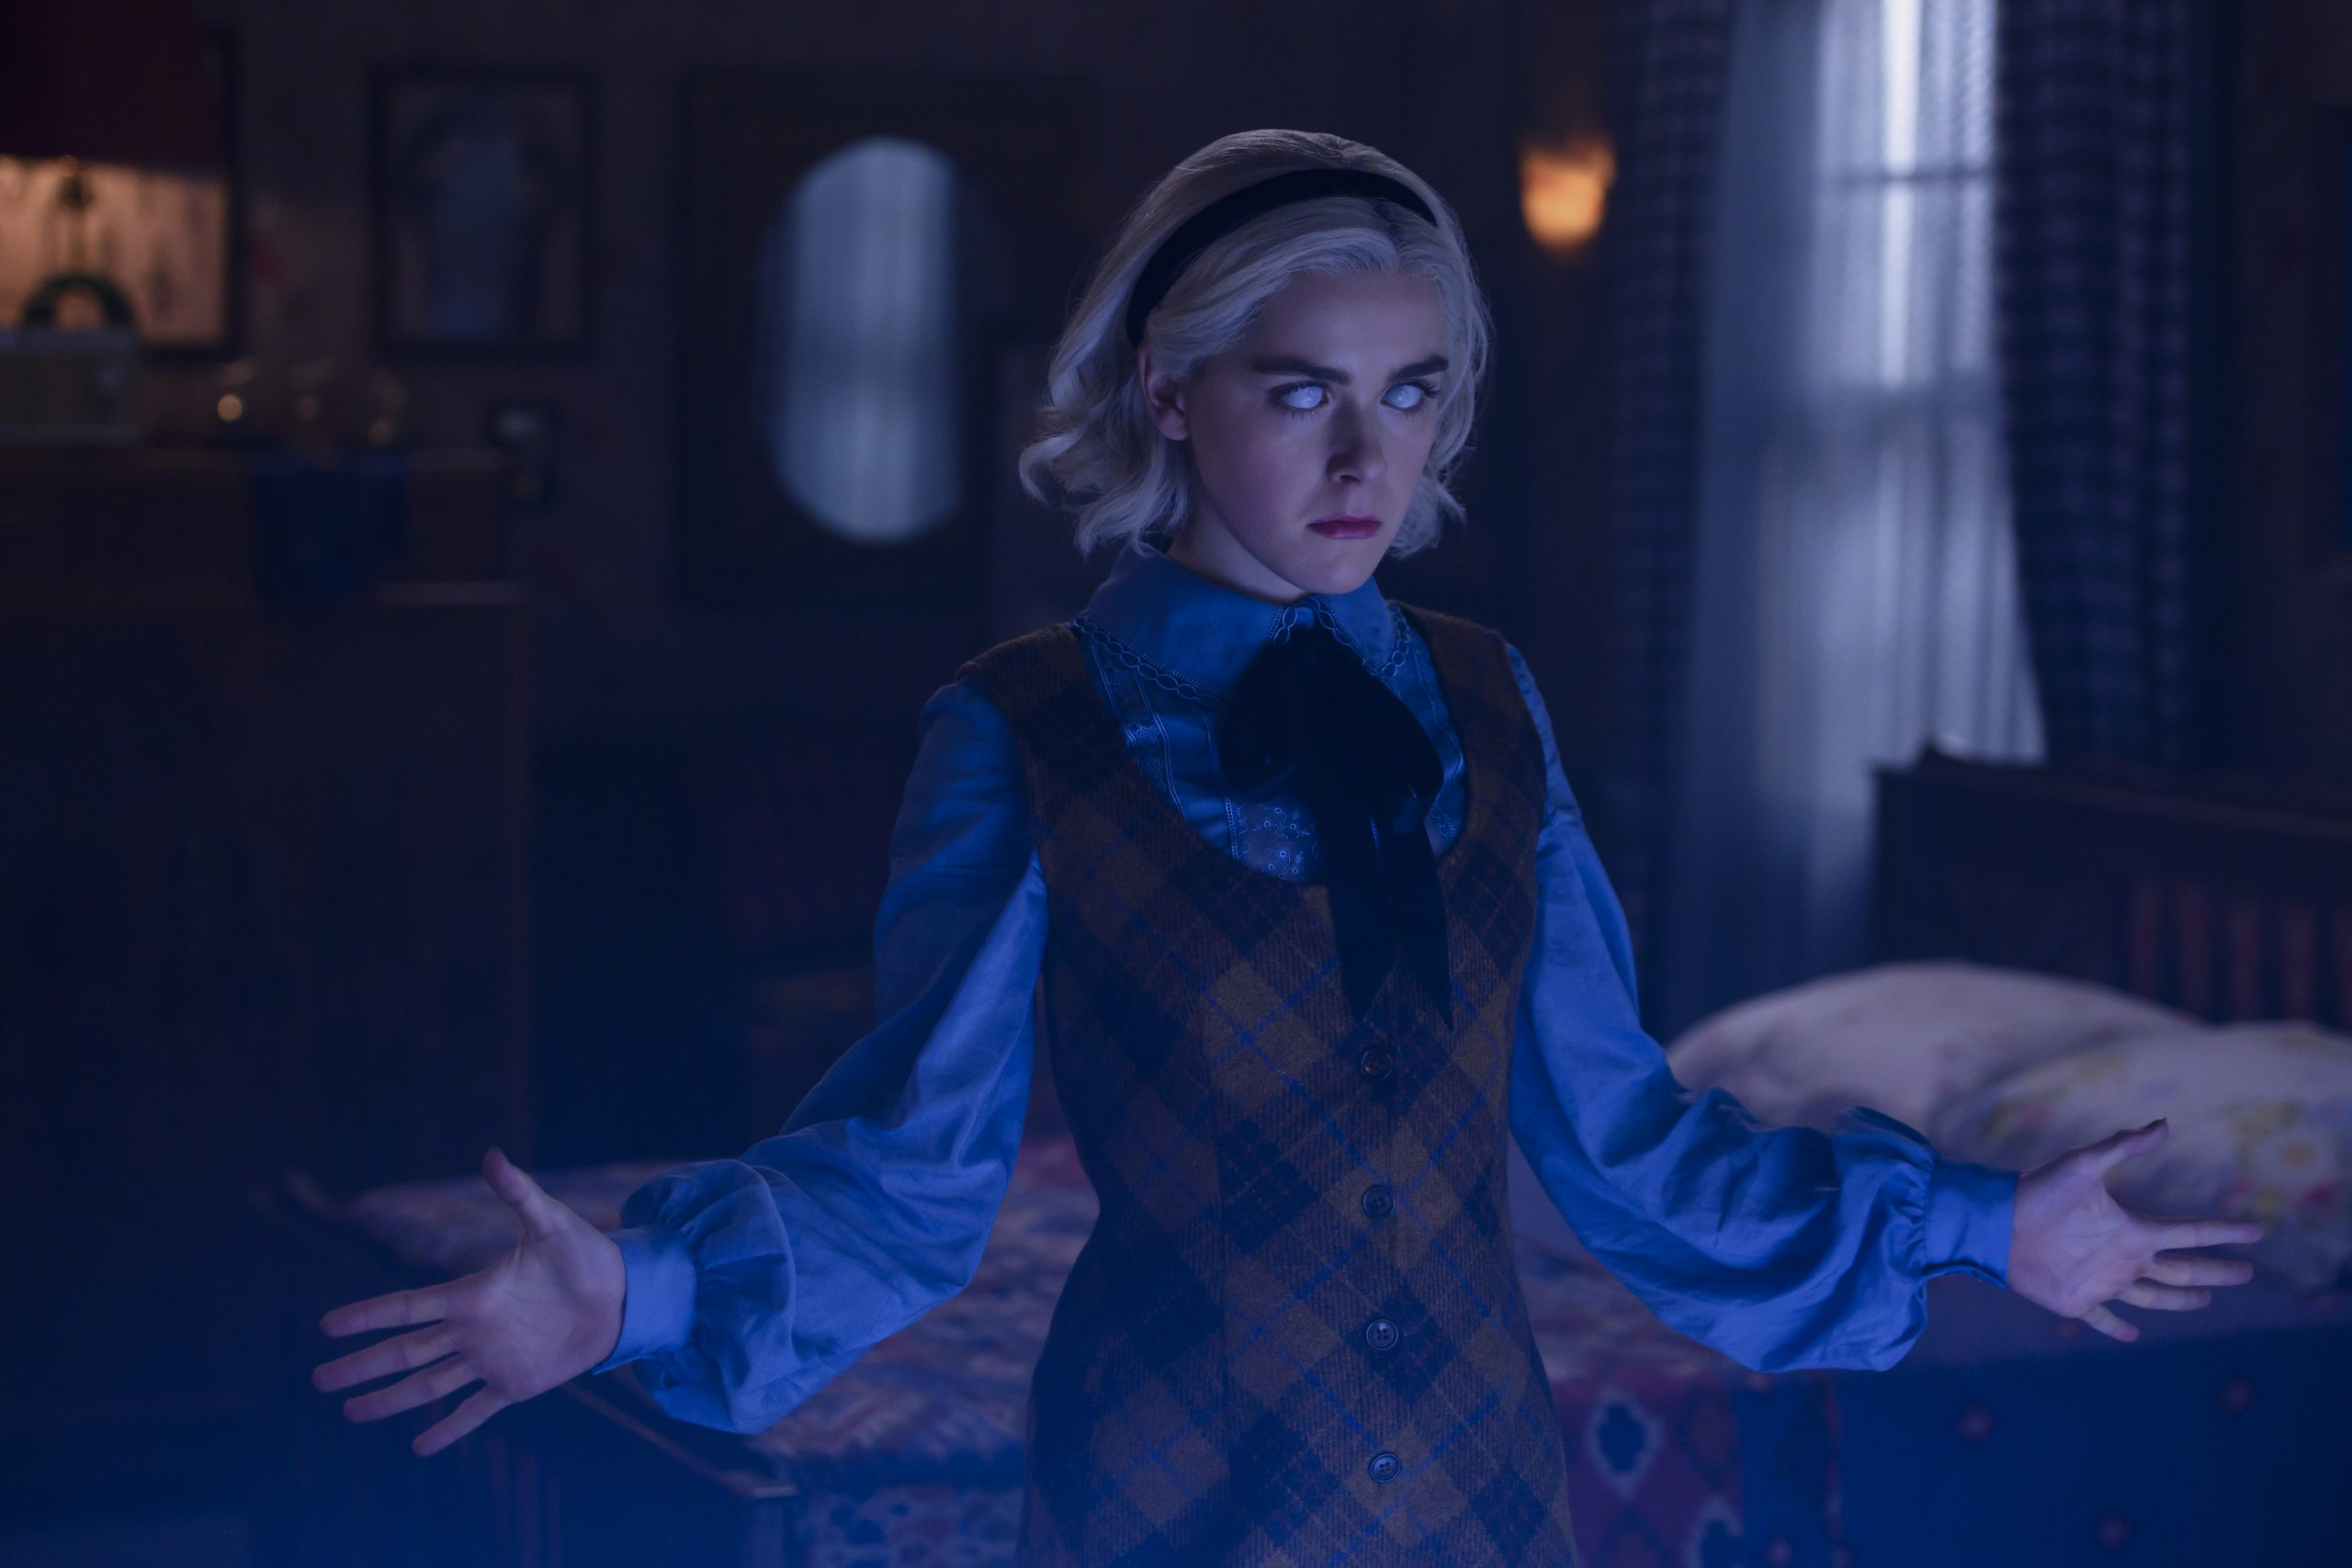 [News] Chilling Adventures of Sabrina Returns This January